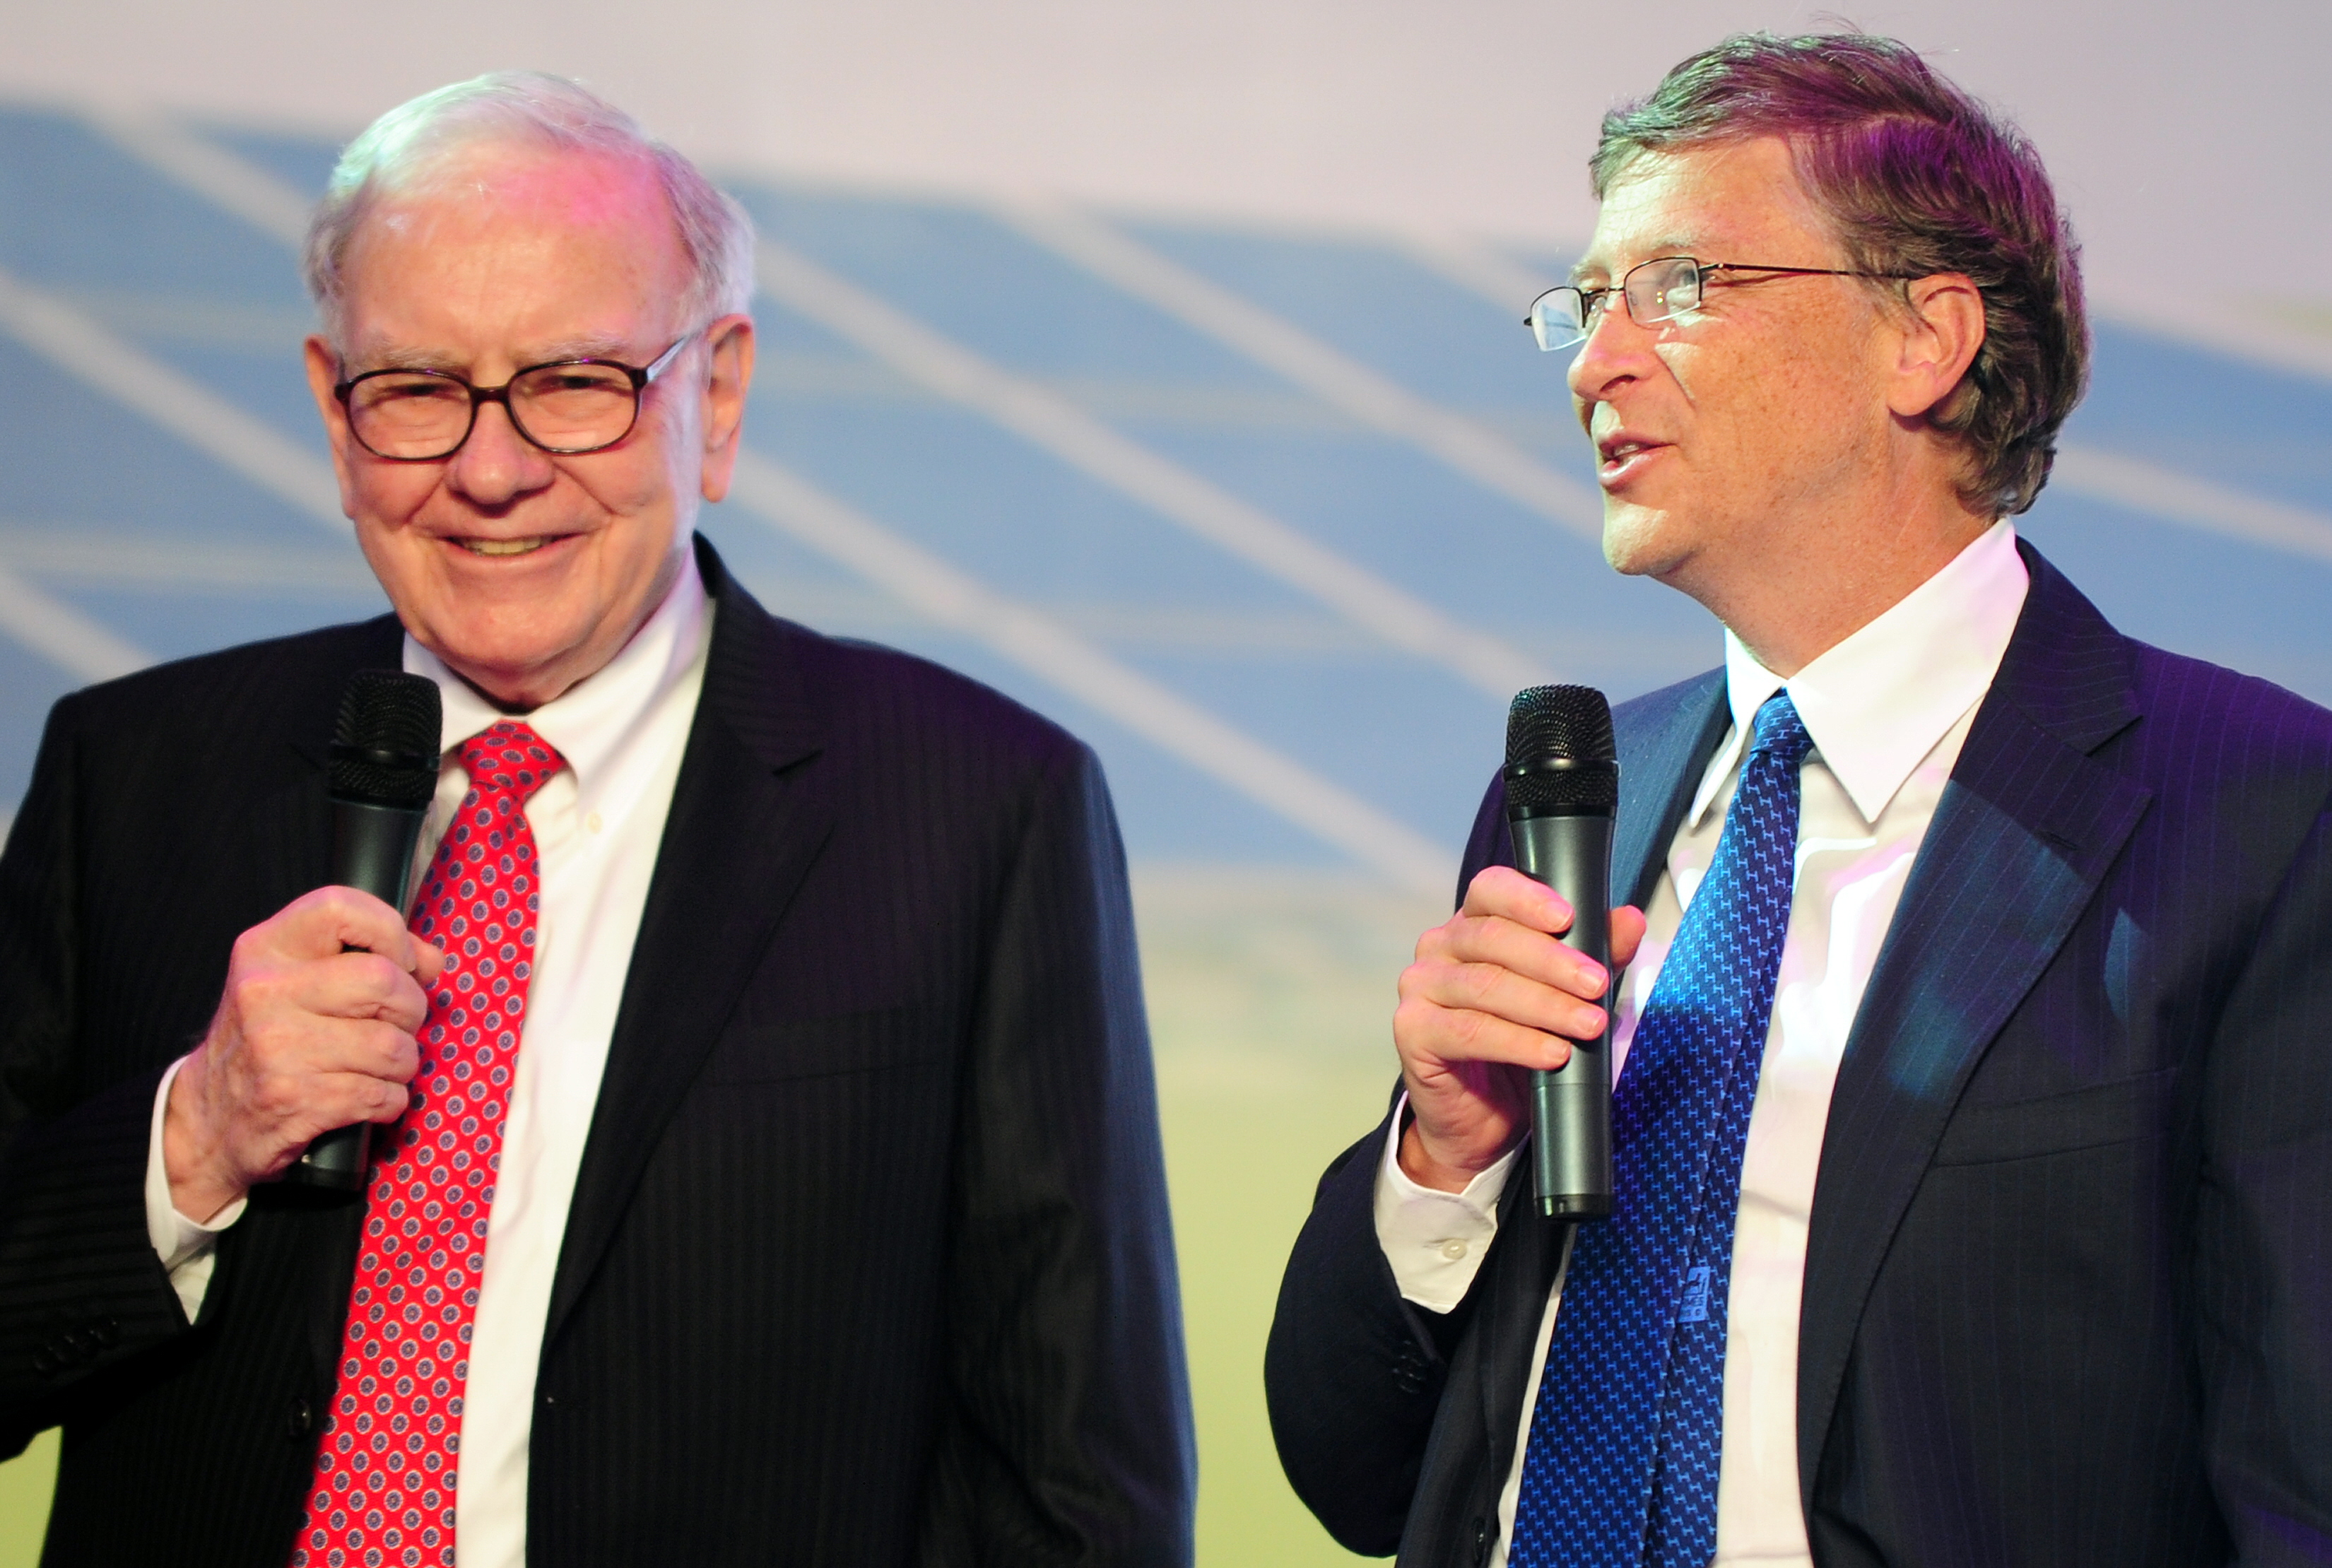 Warren Buffett (L) and Bill Gates (R) are two of the eight men that have as much wealth as 50% of the world.